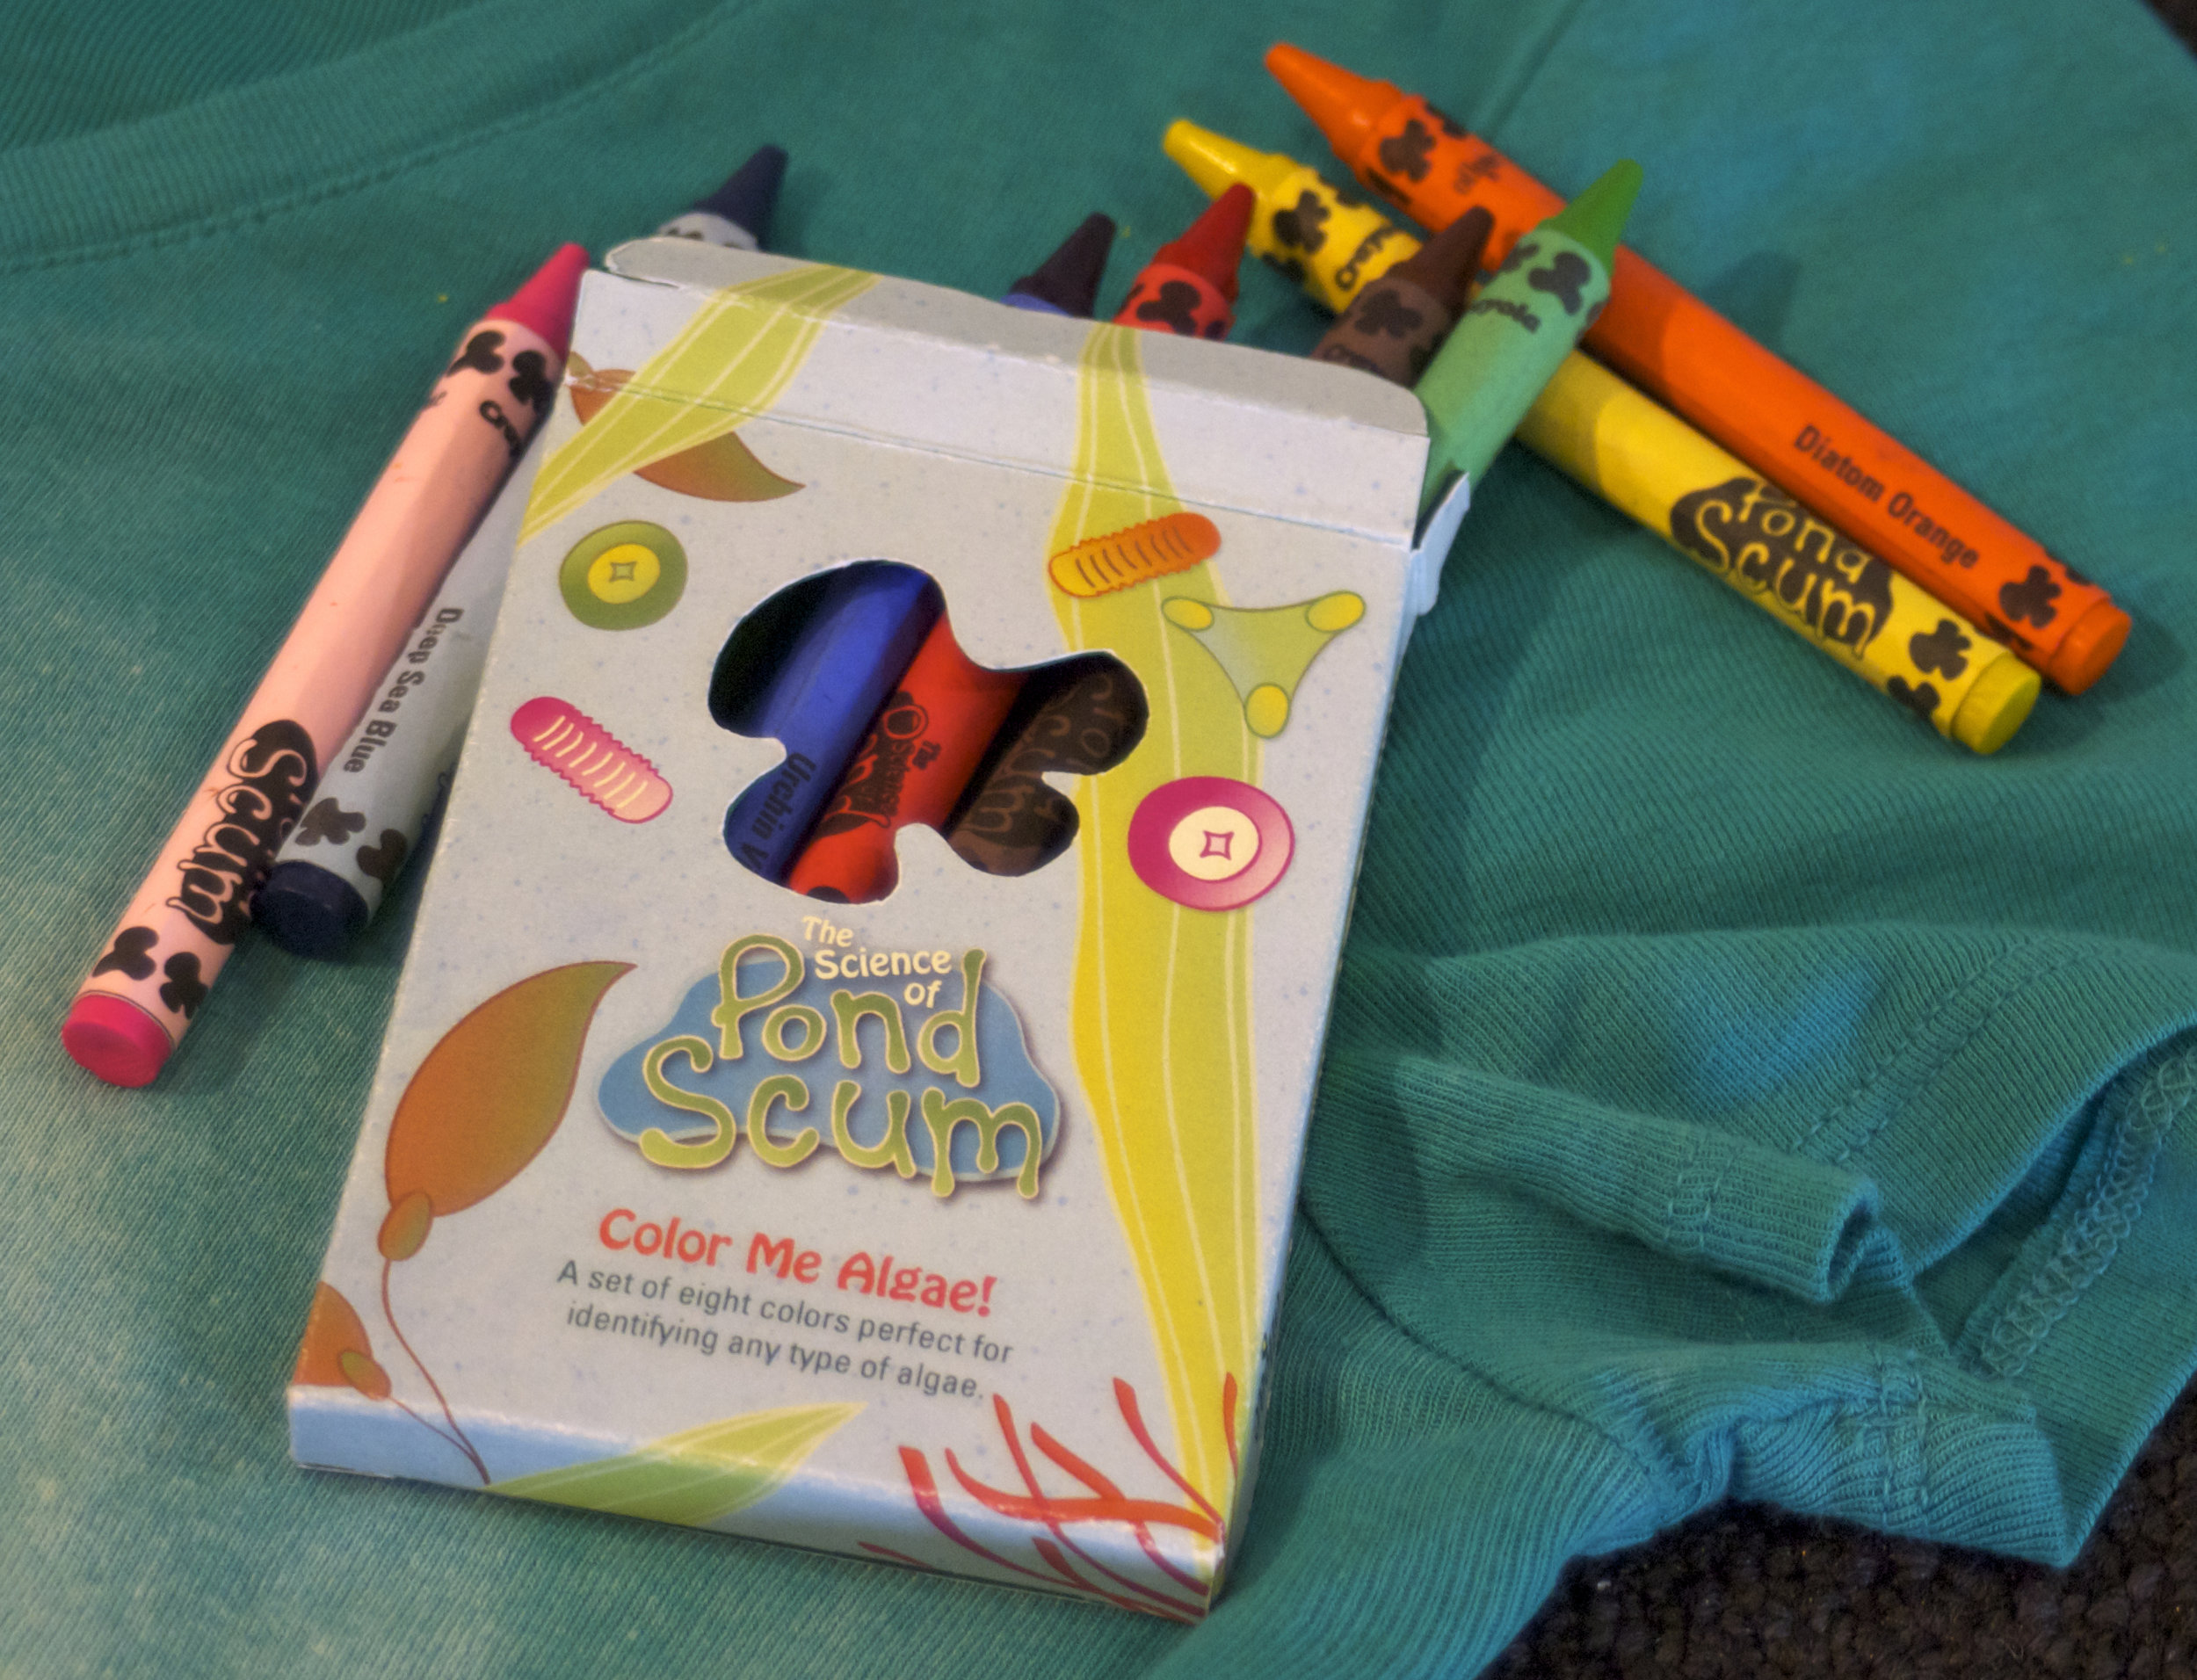 A custom set of crayons to give away to kids during the SoPS lecture, featuring related art on the box, a cutout window of the mascot Al, and specific color names, relevant to the information they've learned.